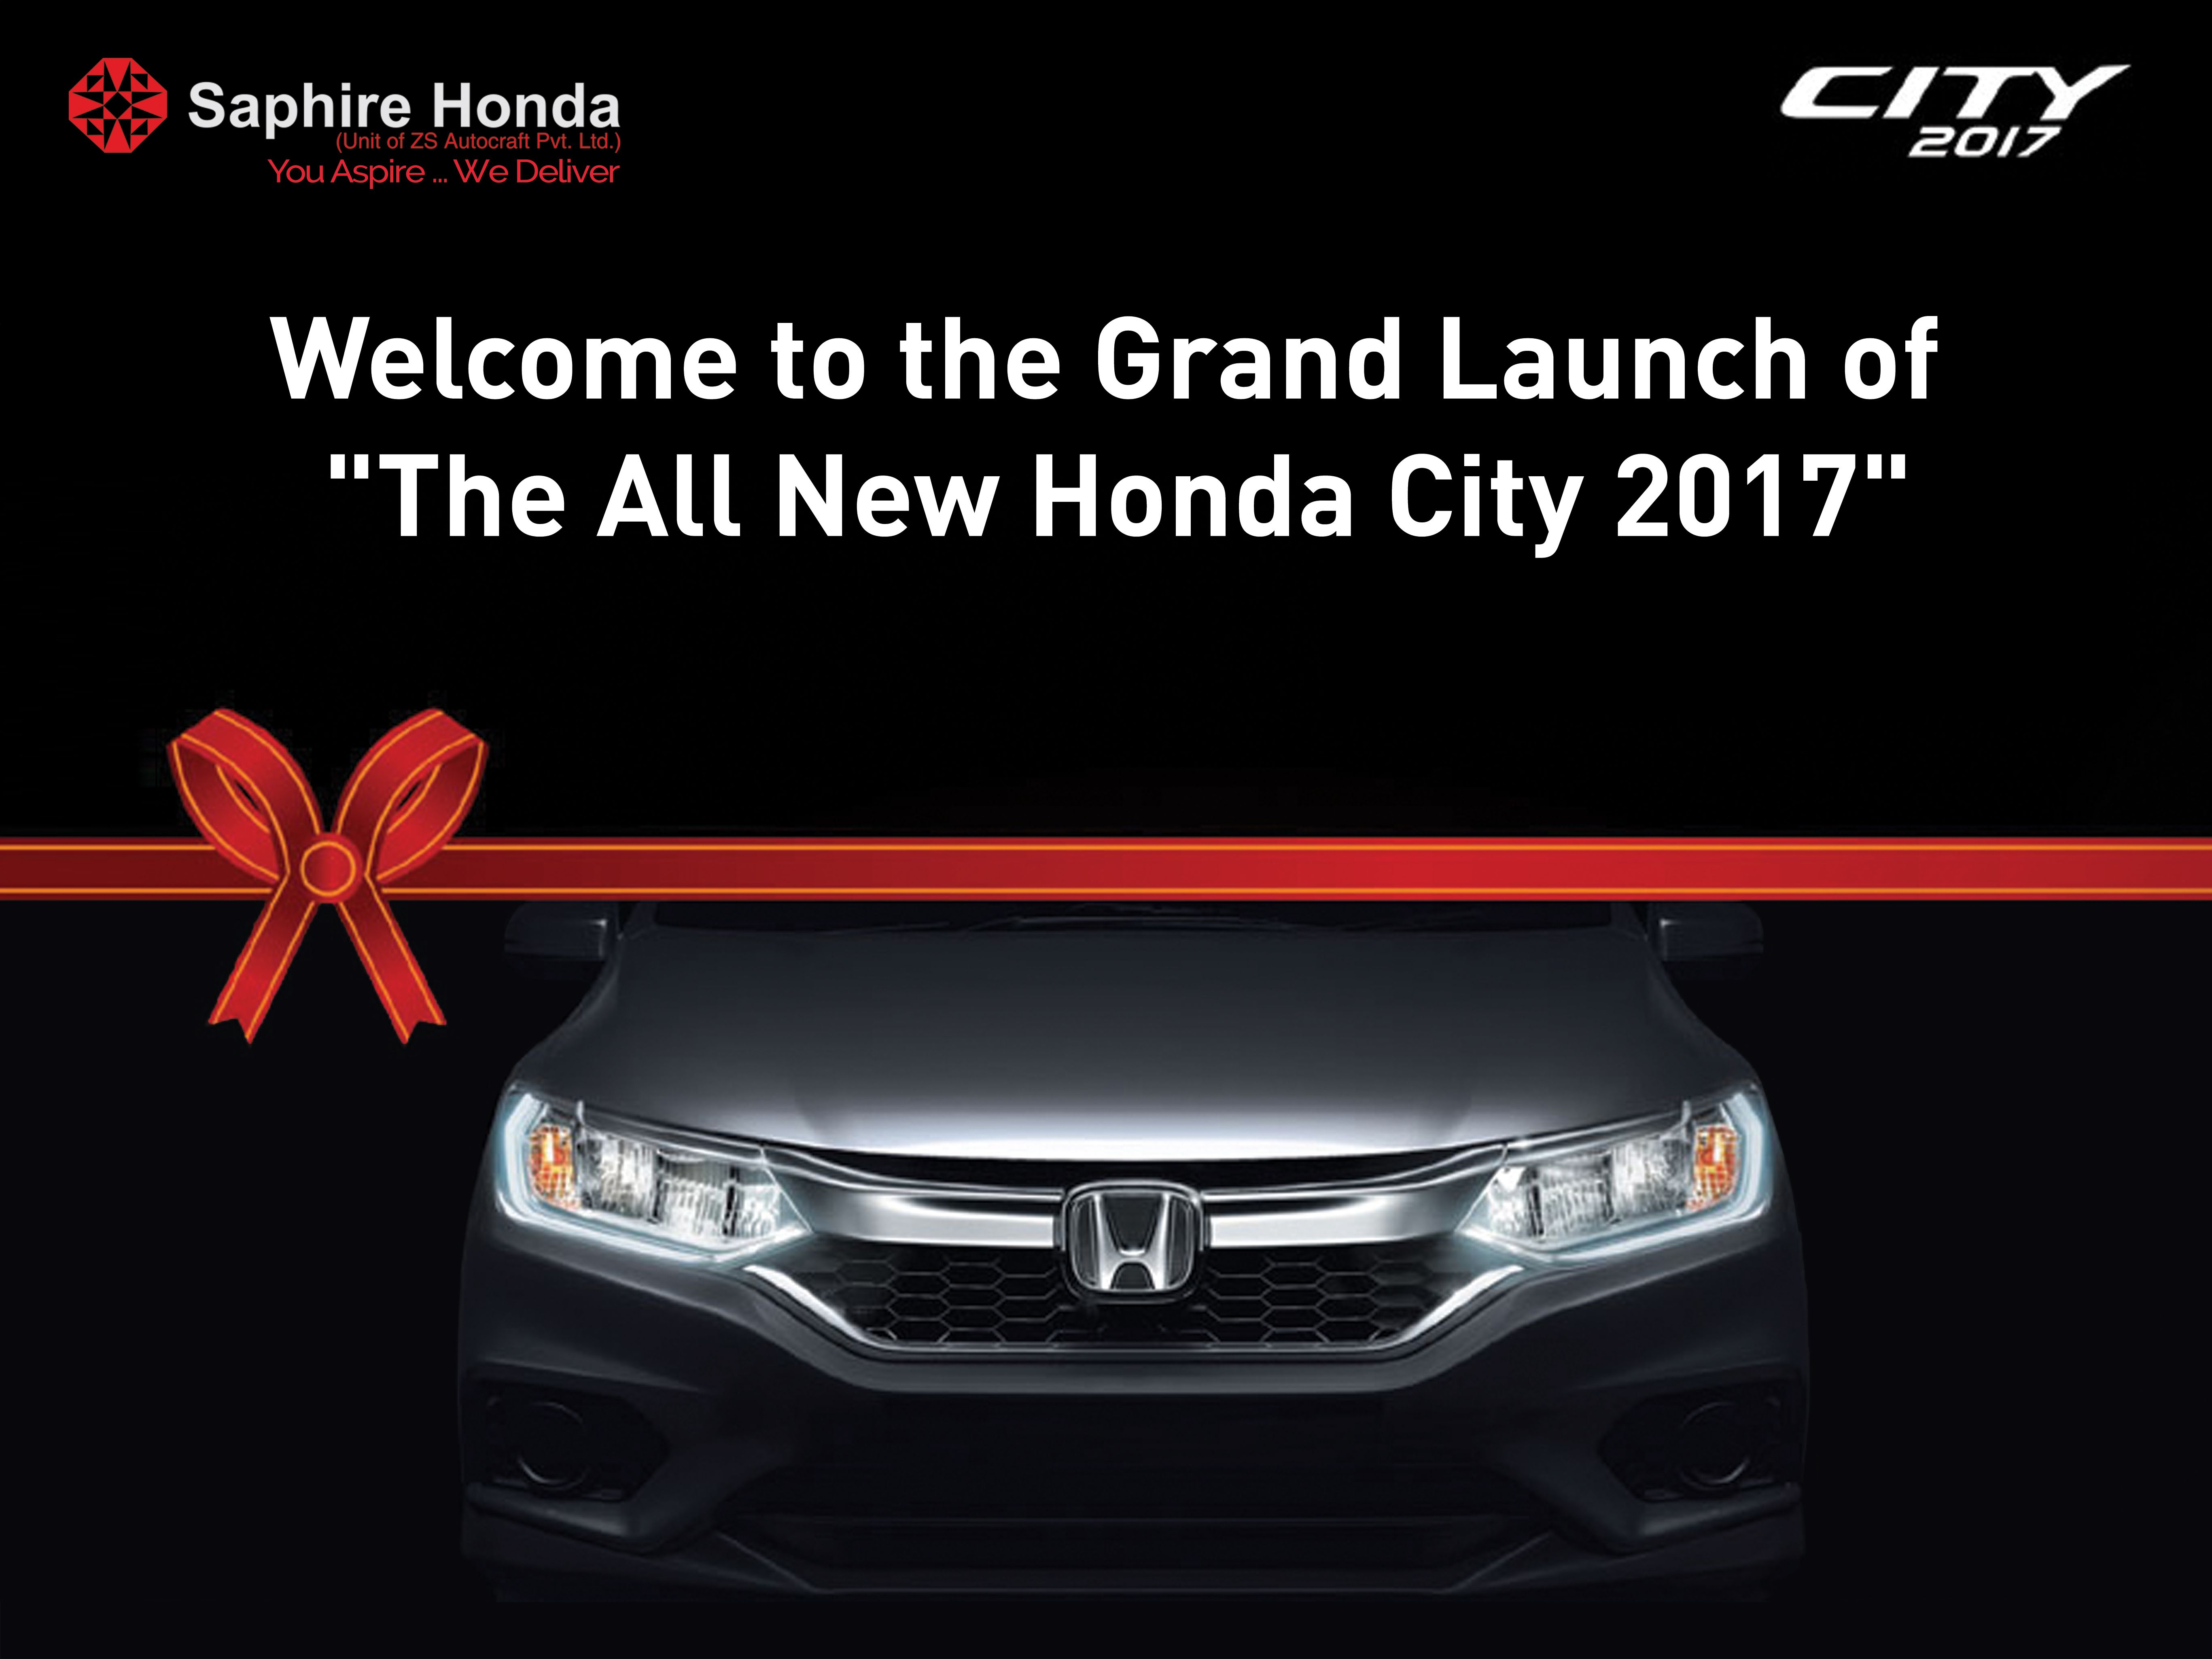 We welcome all for the grand launch of new honda city 2017 at our showroom 12